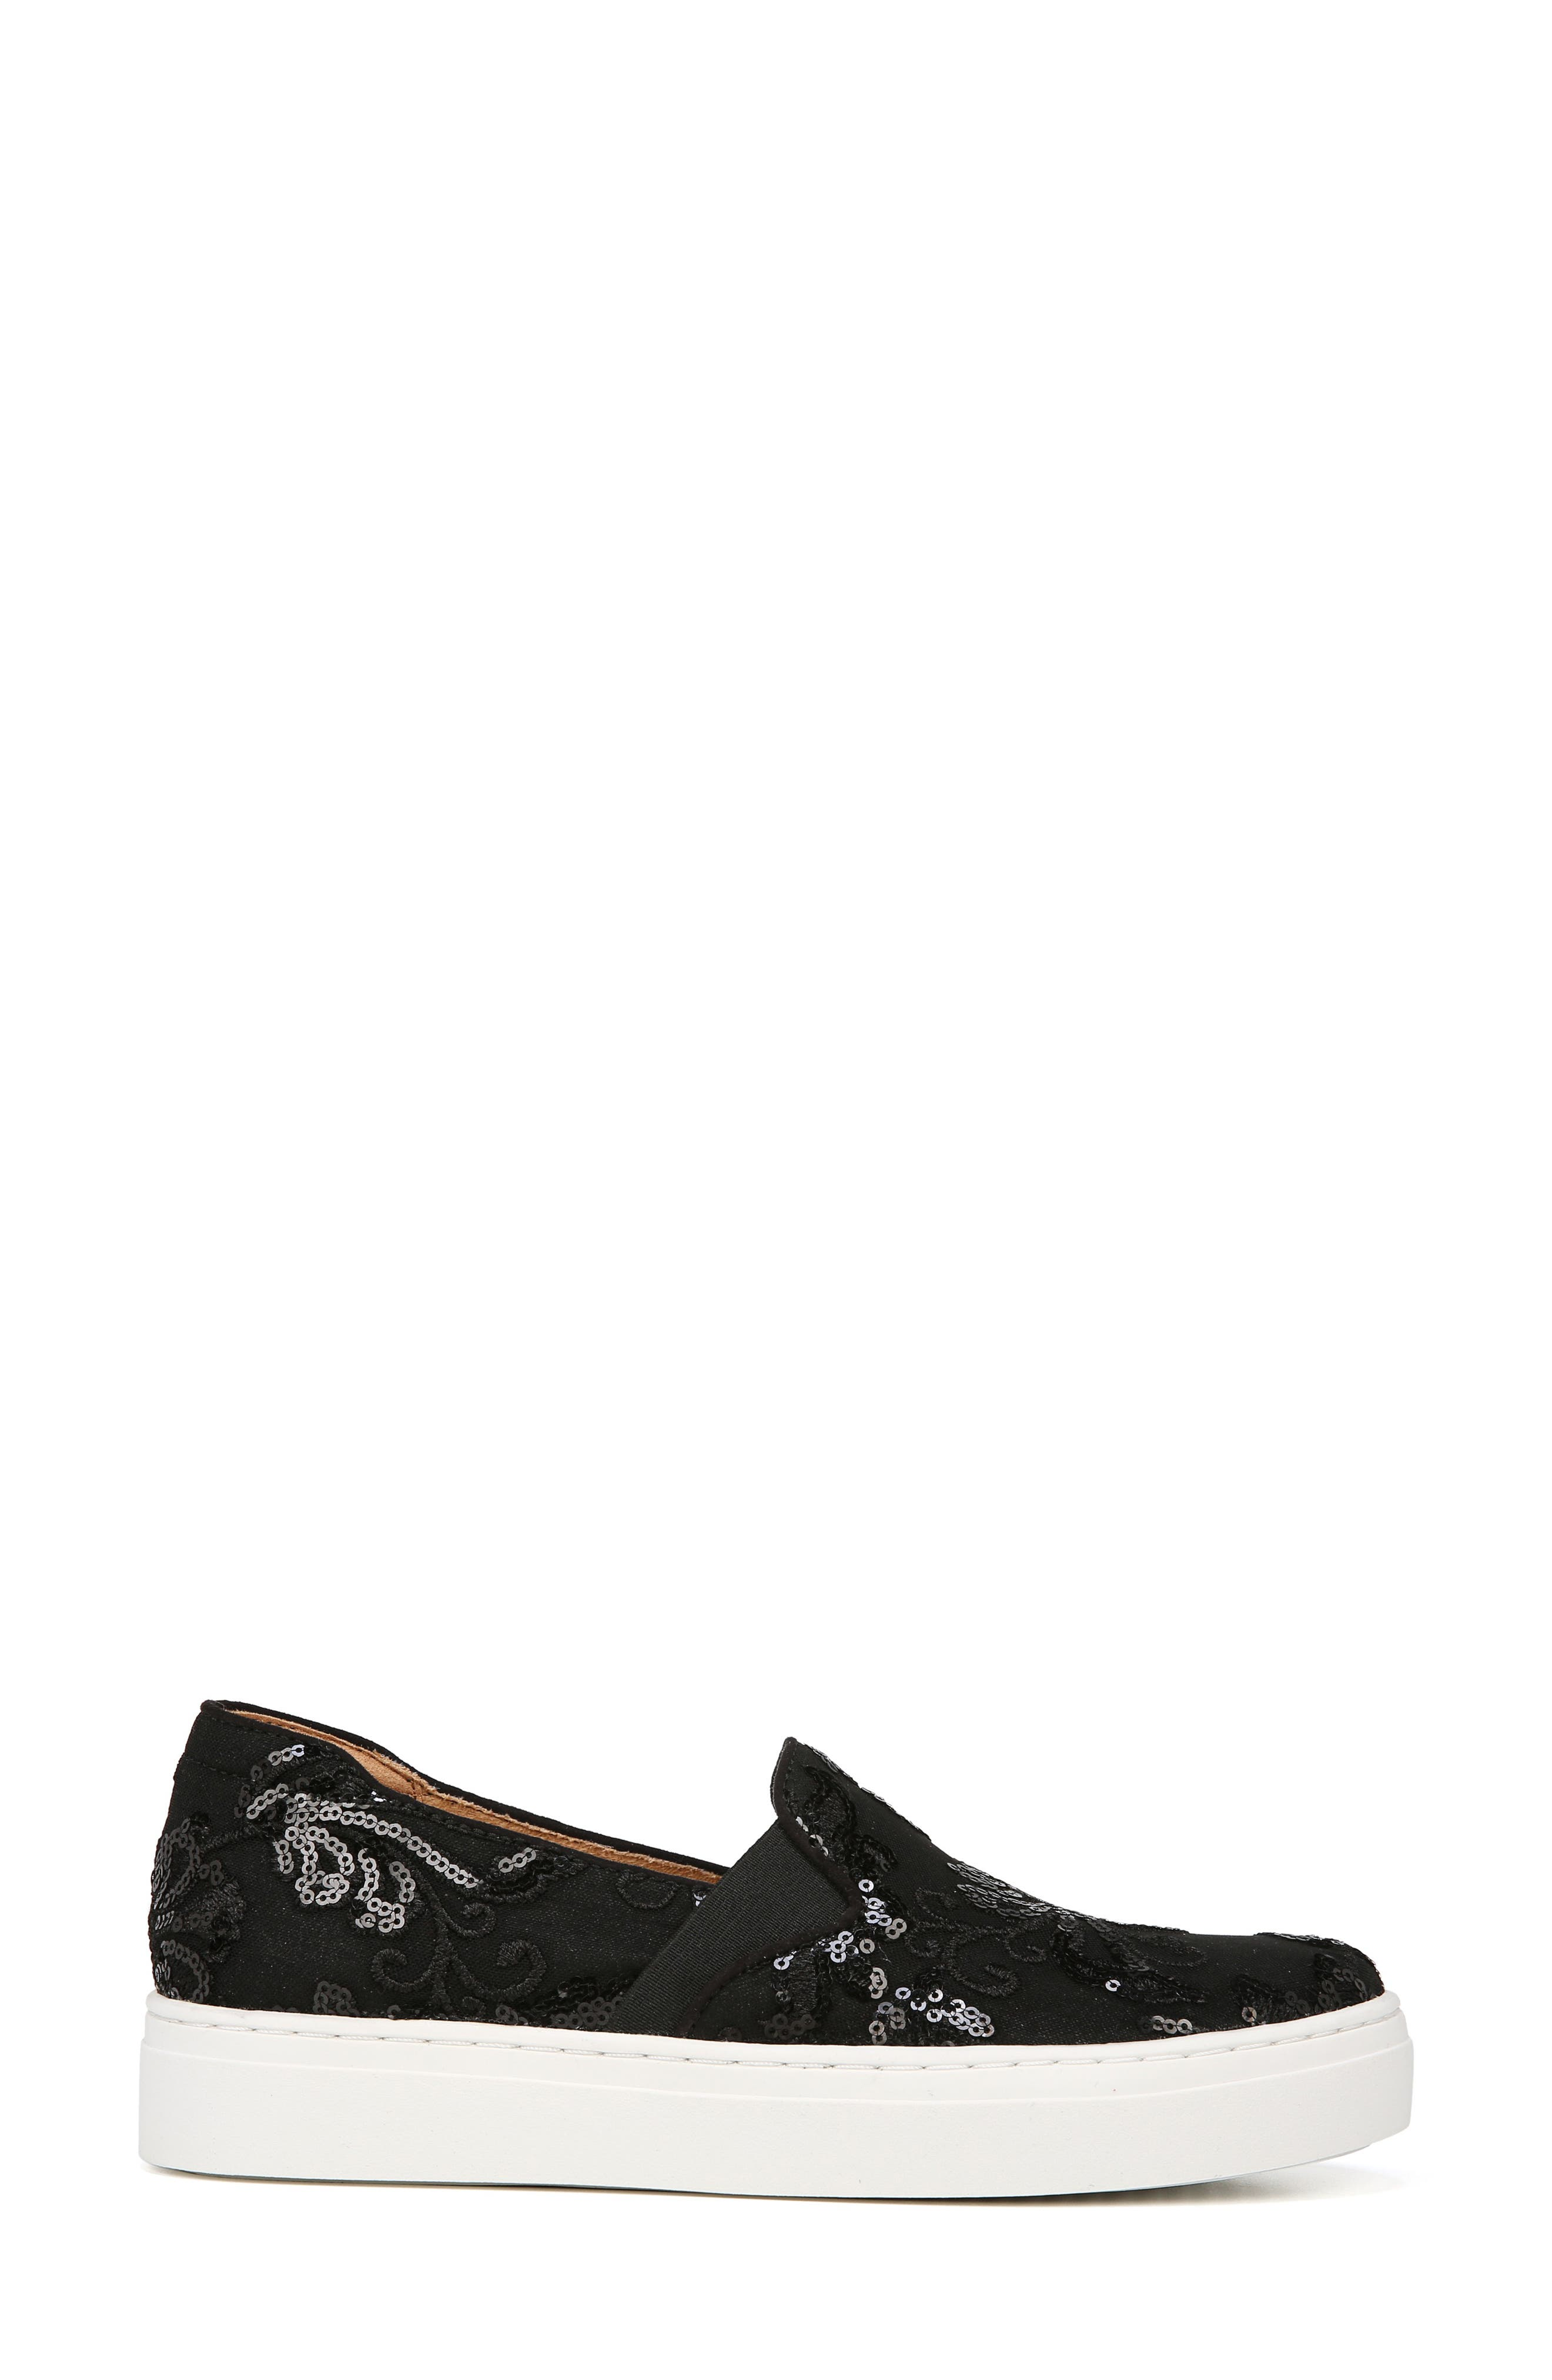 NATURALIZER, Carly Slip-On Sneaker, Alternate thumbnail 3, color, BLACK EMBROIDERED LACE